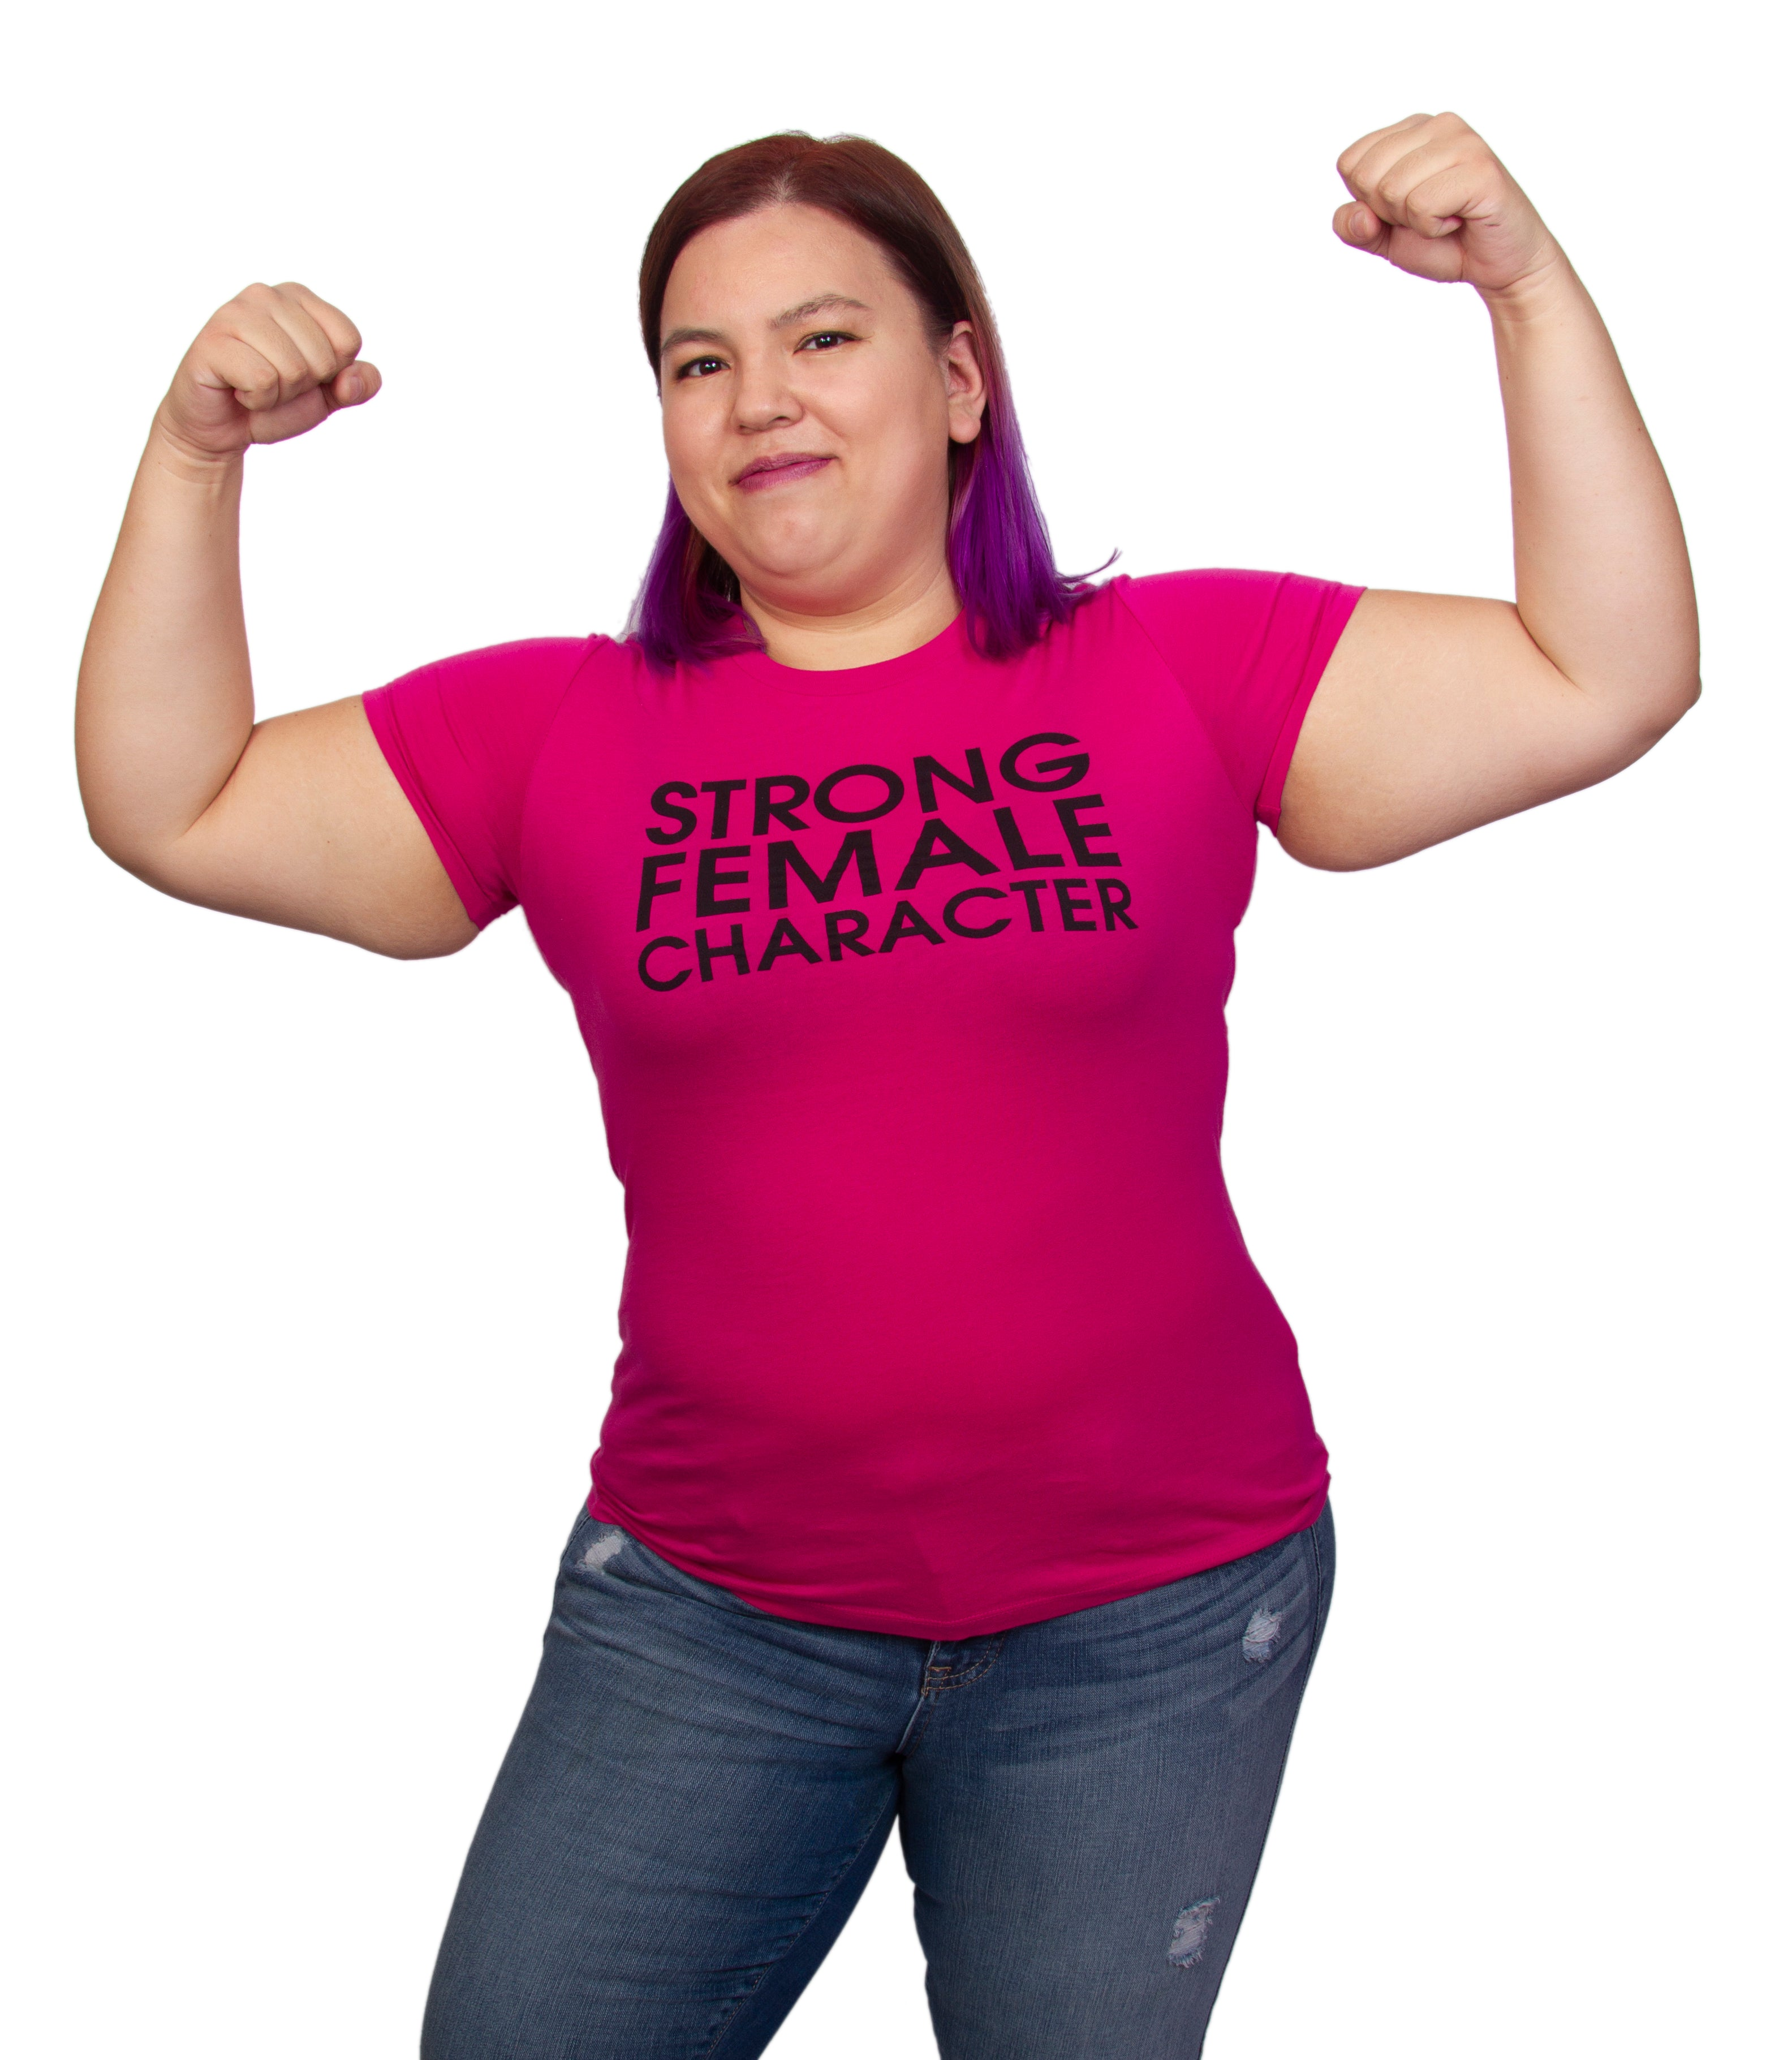 Strong Female Character Pink T-shirt - Women's Cut